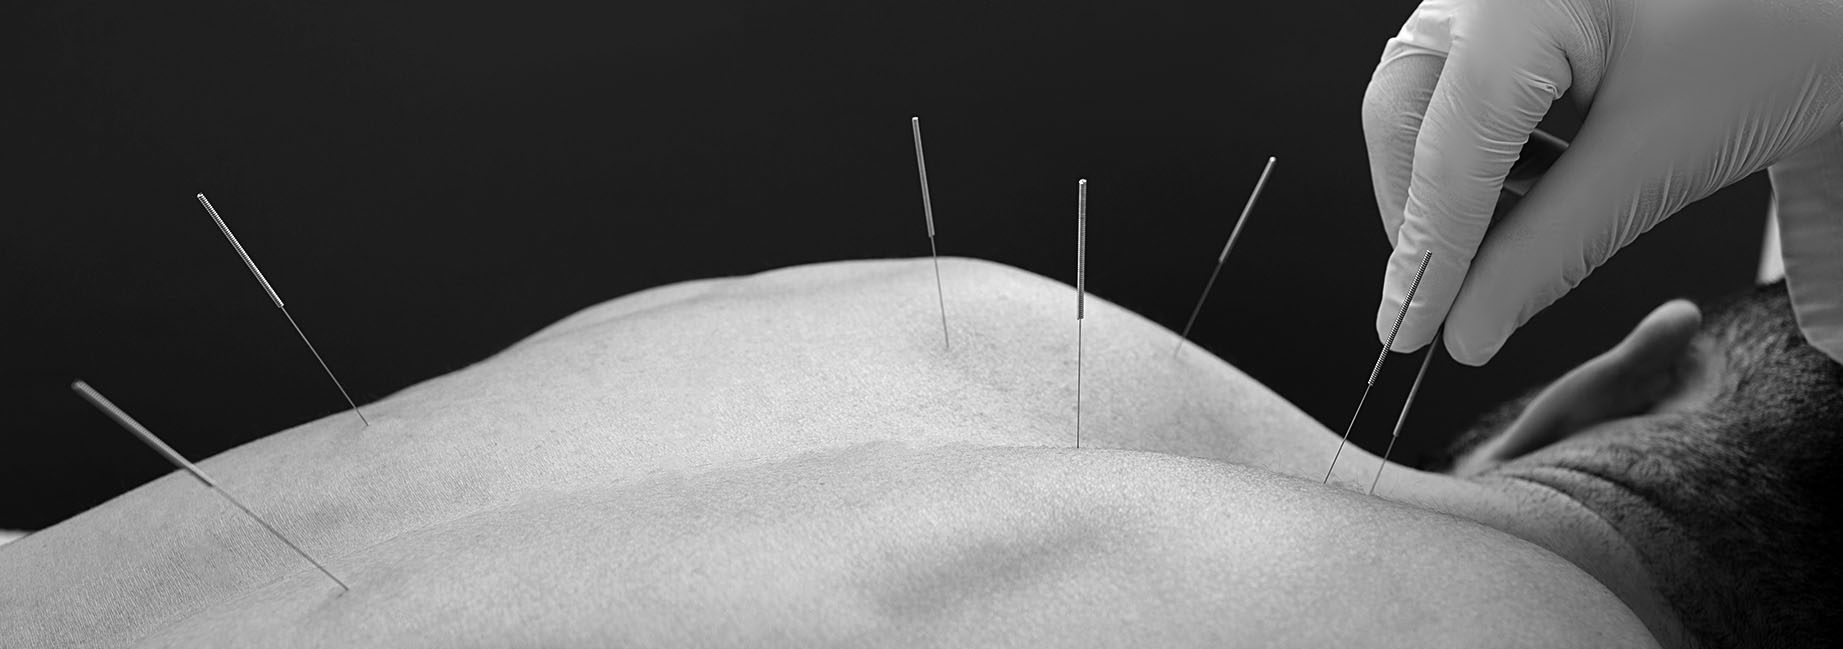 Close-up needle in the back of man during acupuncture procedure on a brown background. Acupuncture.